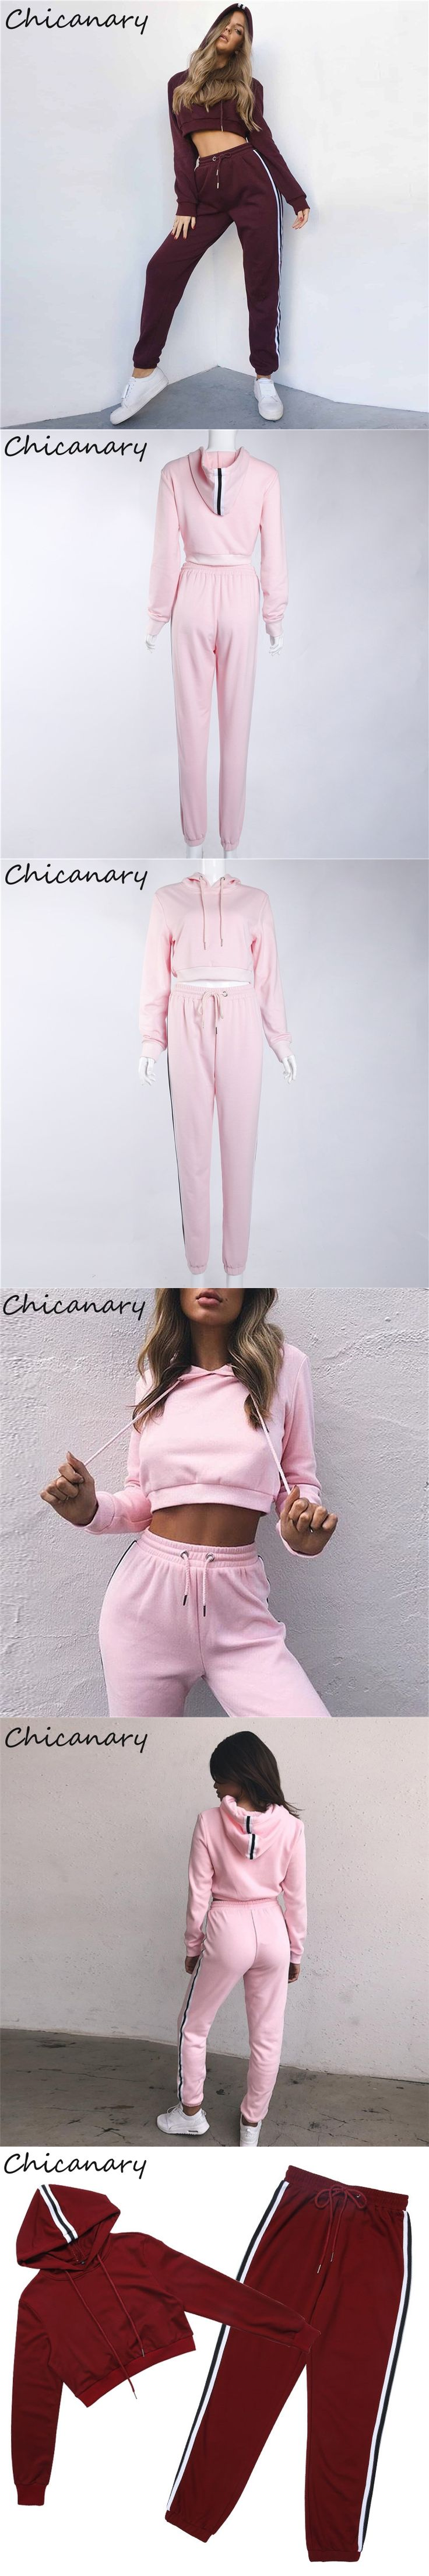 Chicanary Women Fashion Casual Tracksuit Autumn Winter Long Sleeve Crop Top Pink Hoodies Suit Set Sweatshirt Strpied Pant